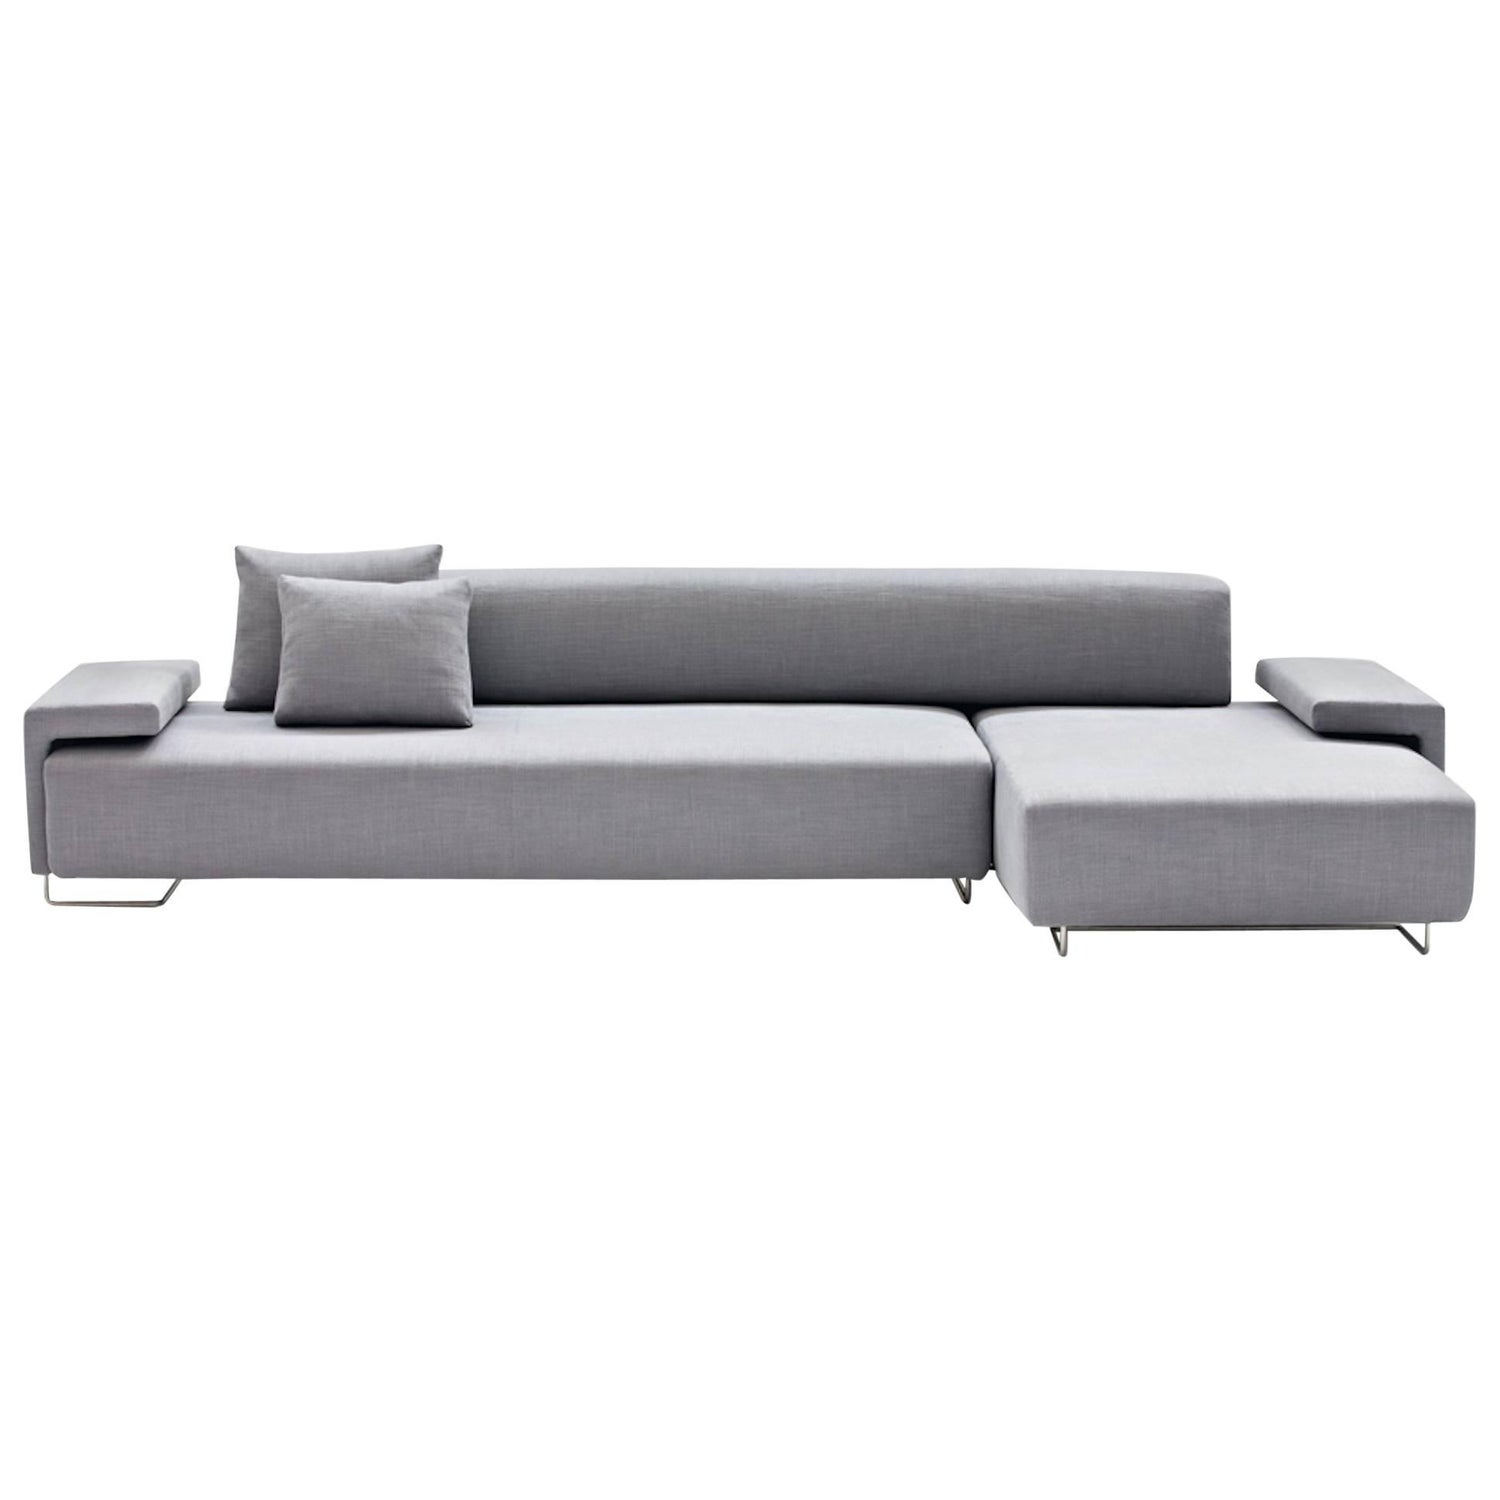 "Minotti ""Andersen Slim 103 Quilt"" L Shape Sofa by Dordoni in ""Paco"